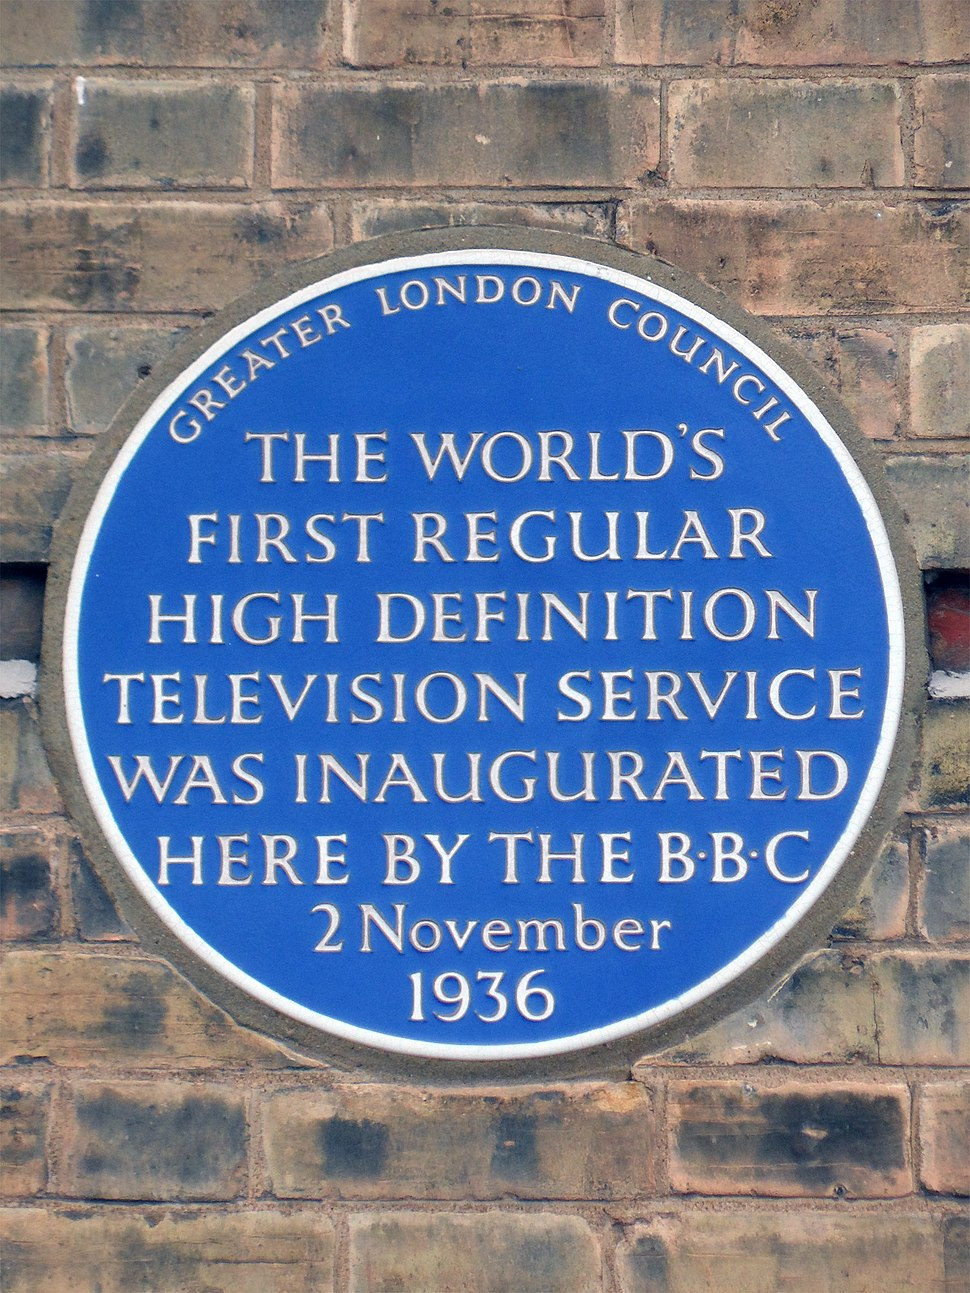 The world's first regular high definition television service was inaugurated here by the BBC 2 November 1936